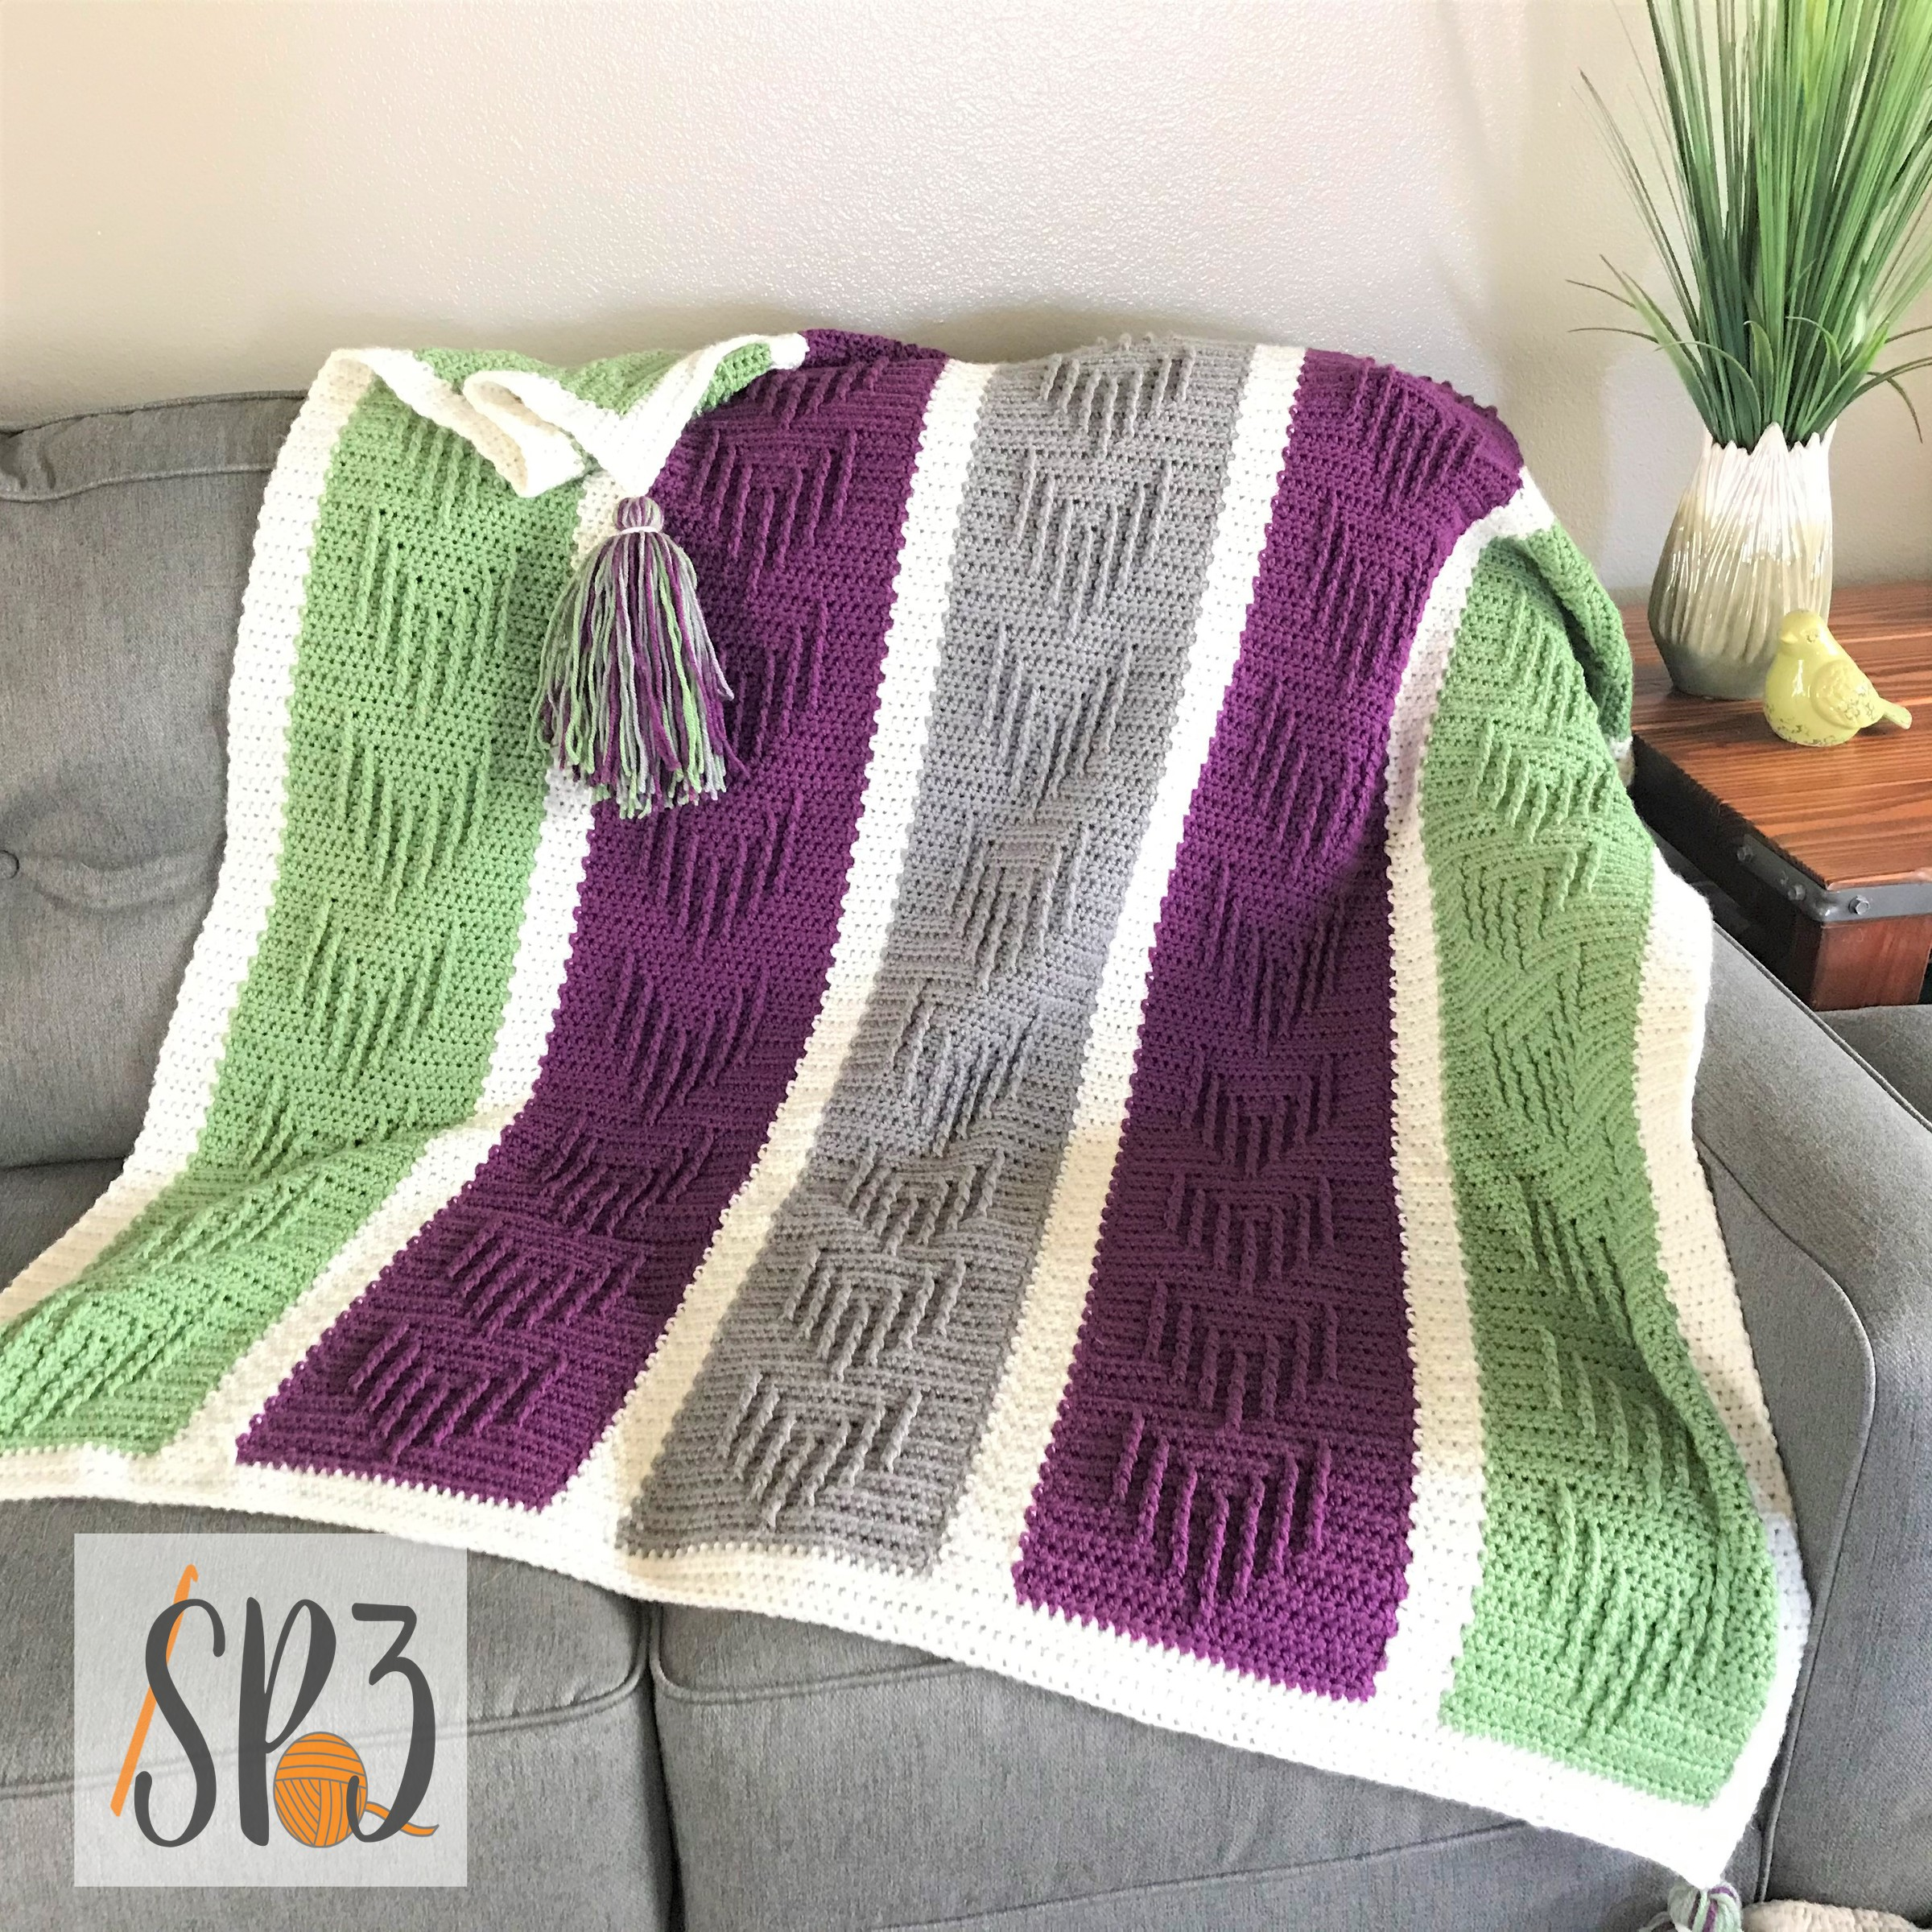 You are currently viewing Chasing Arrows Blanket Crochet Pattern